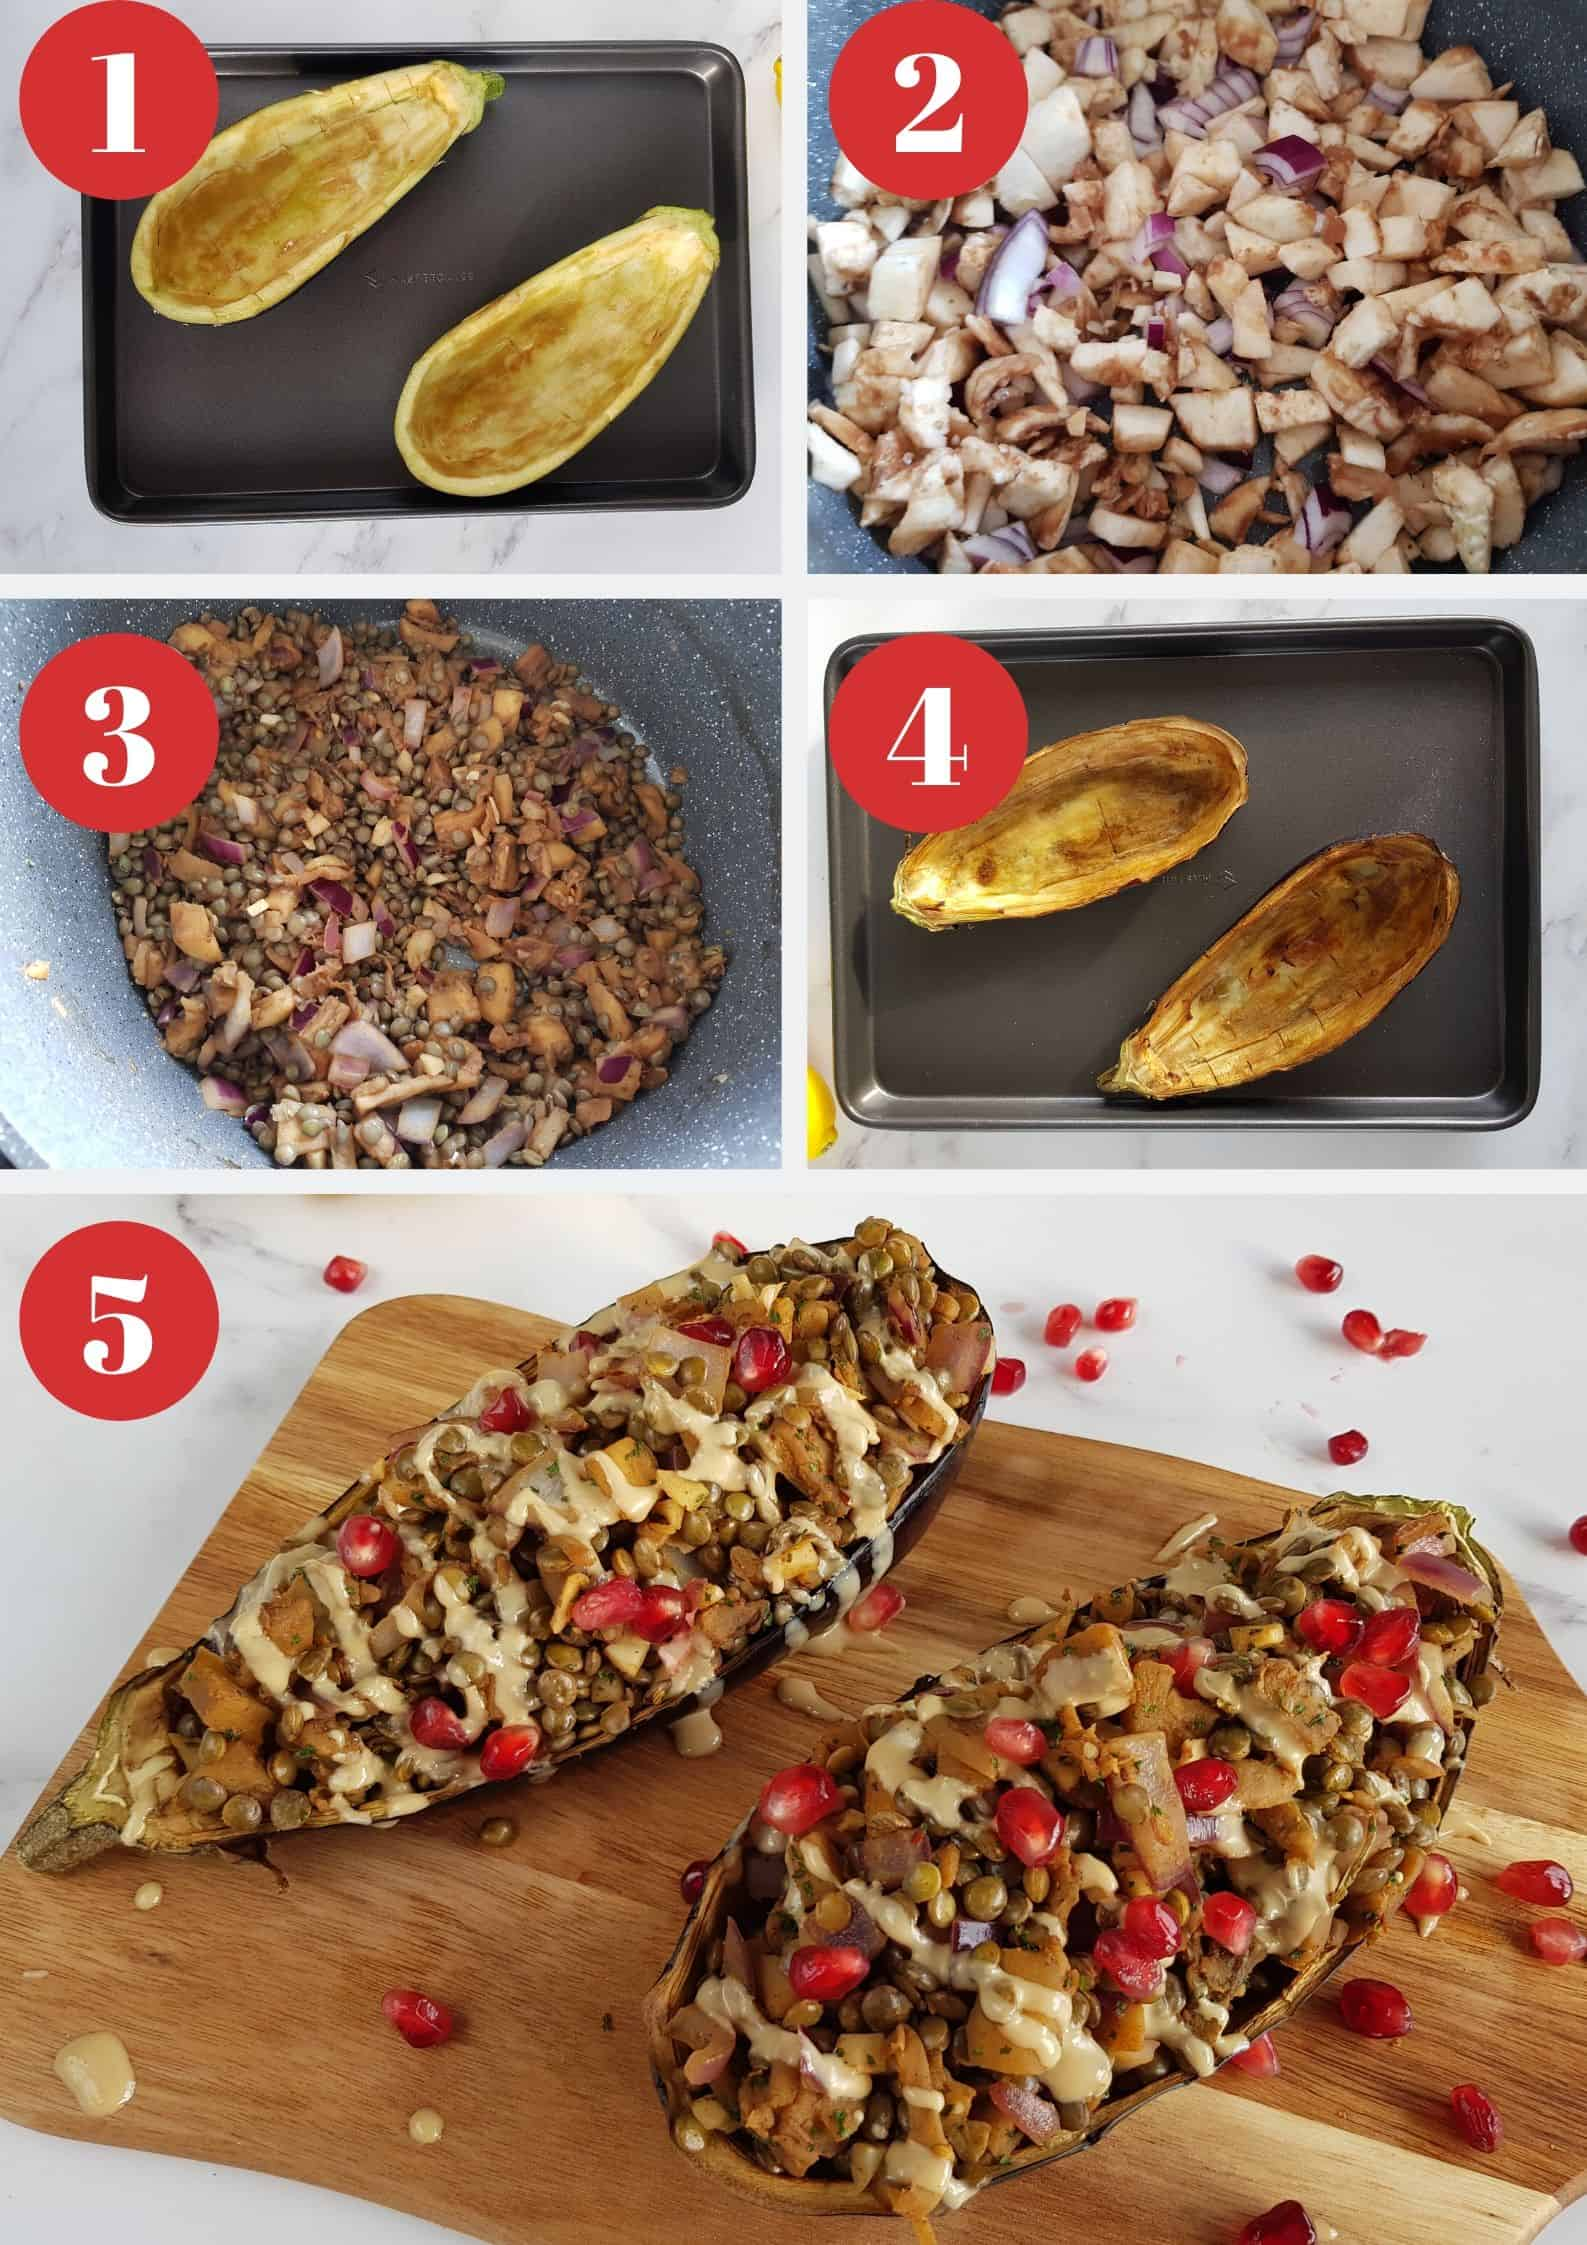 Infographic showing how to make stuffed aubergine.